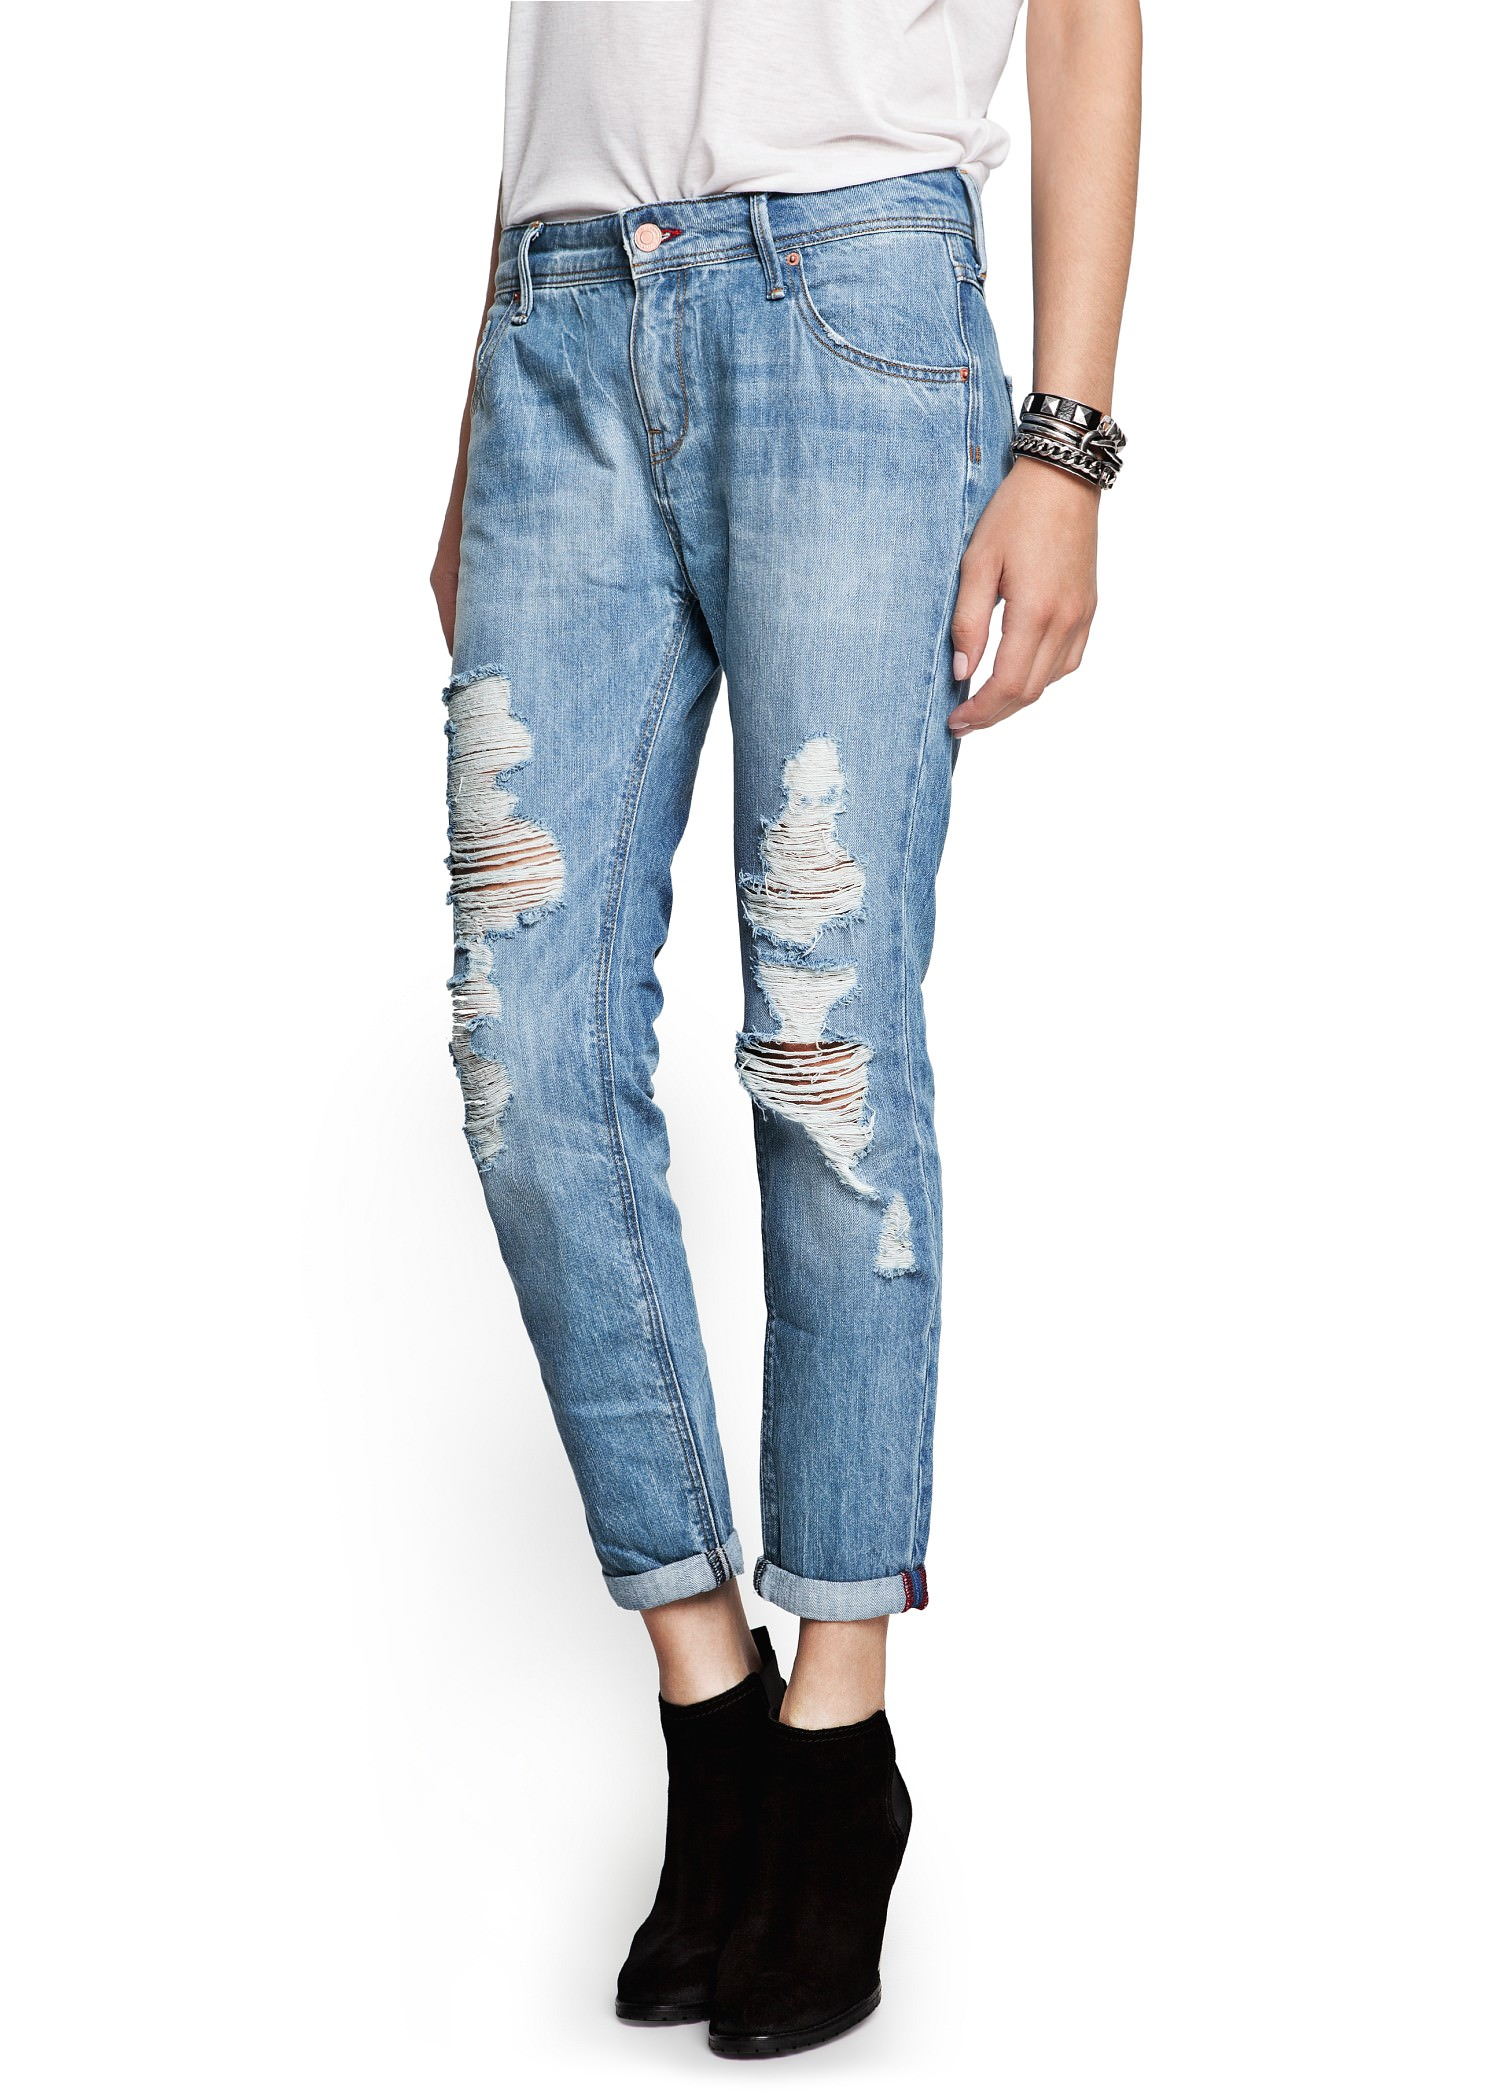 boyfriend jeans for women - photo #3